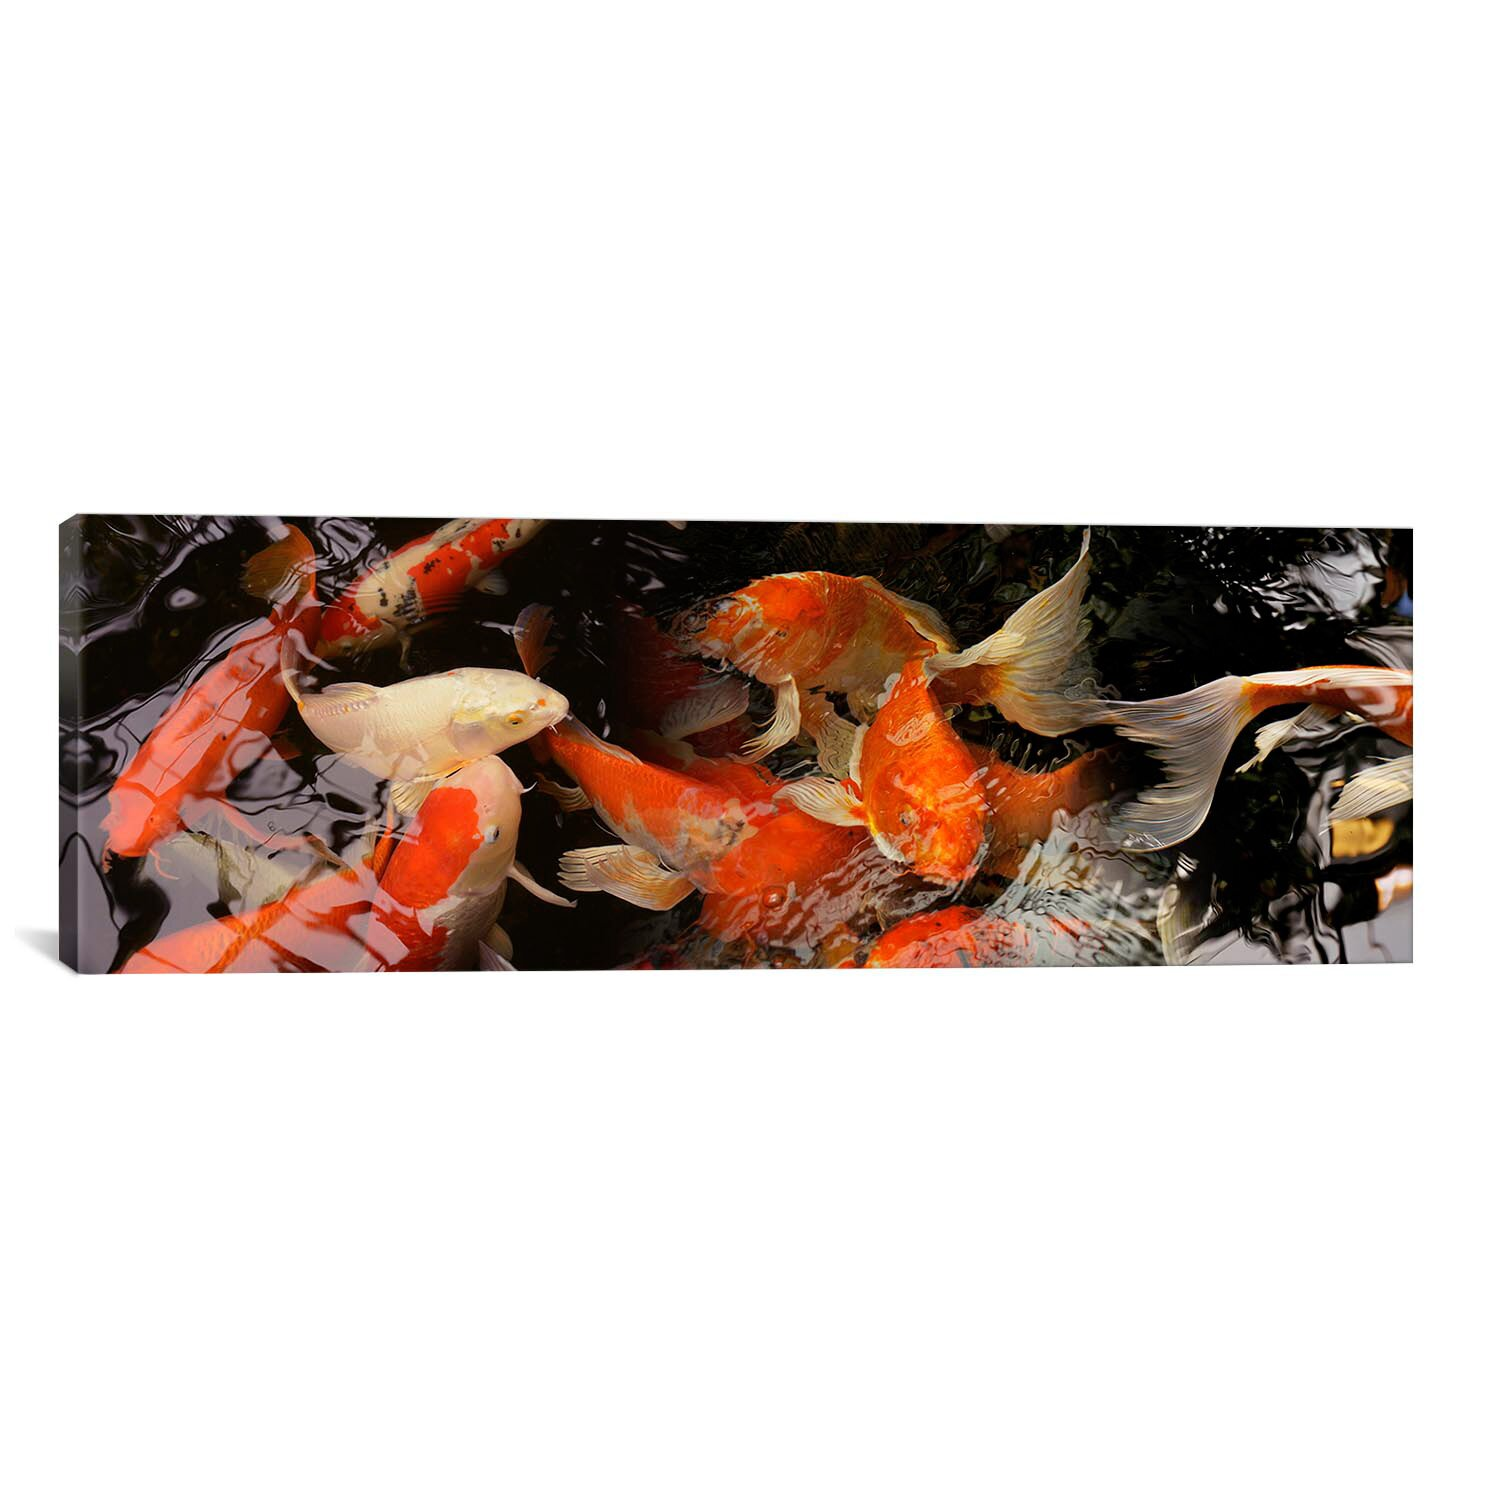 Icanvas panoramic 39 koi carp 39 photographic print on canvas for Koi carp wall art